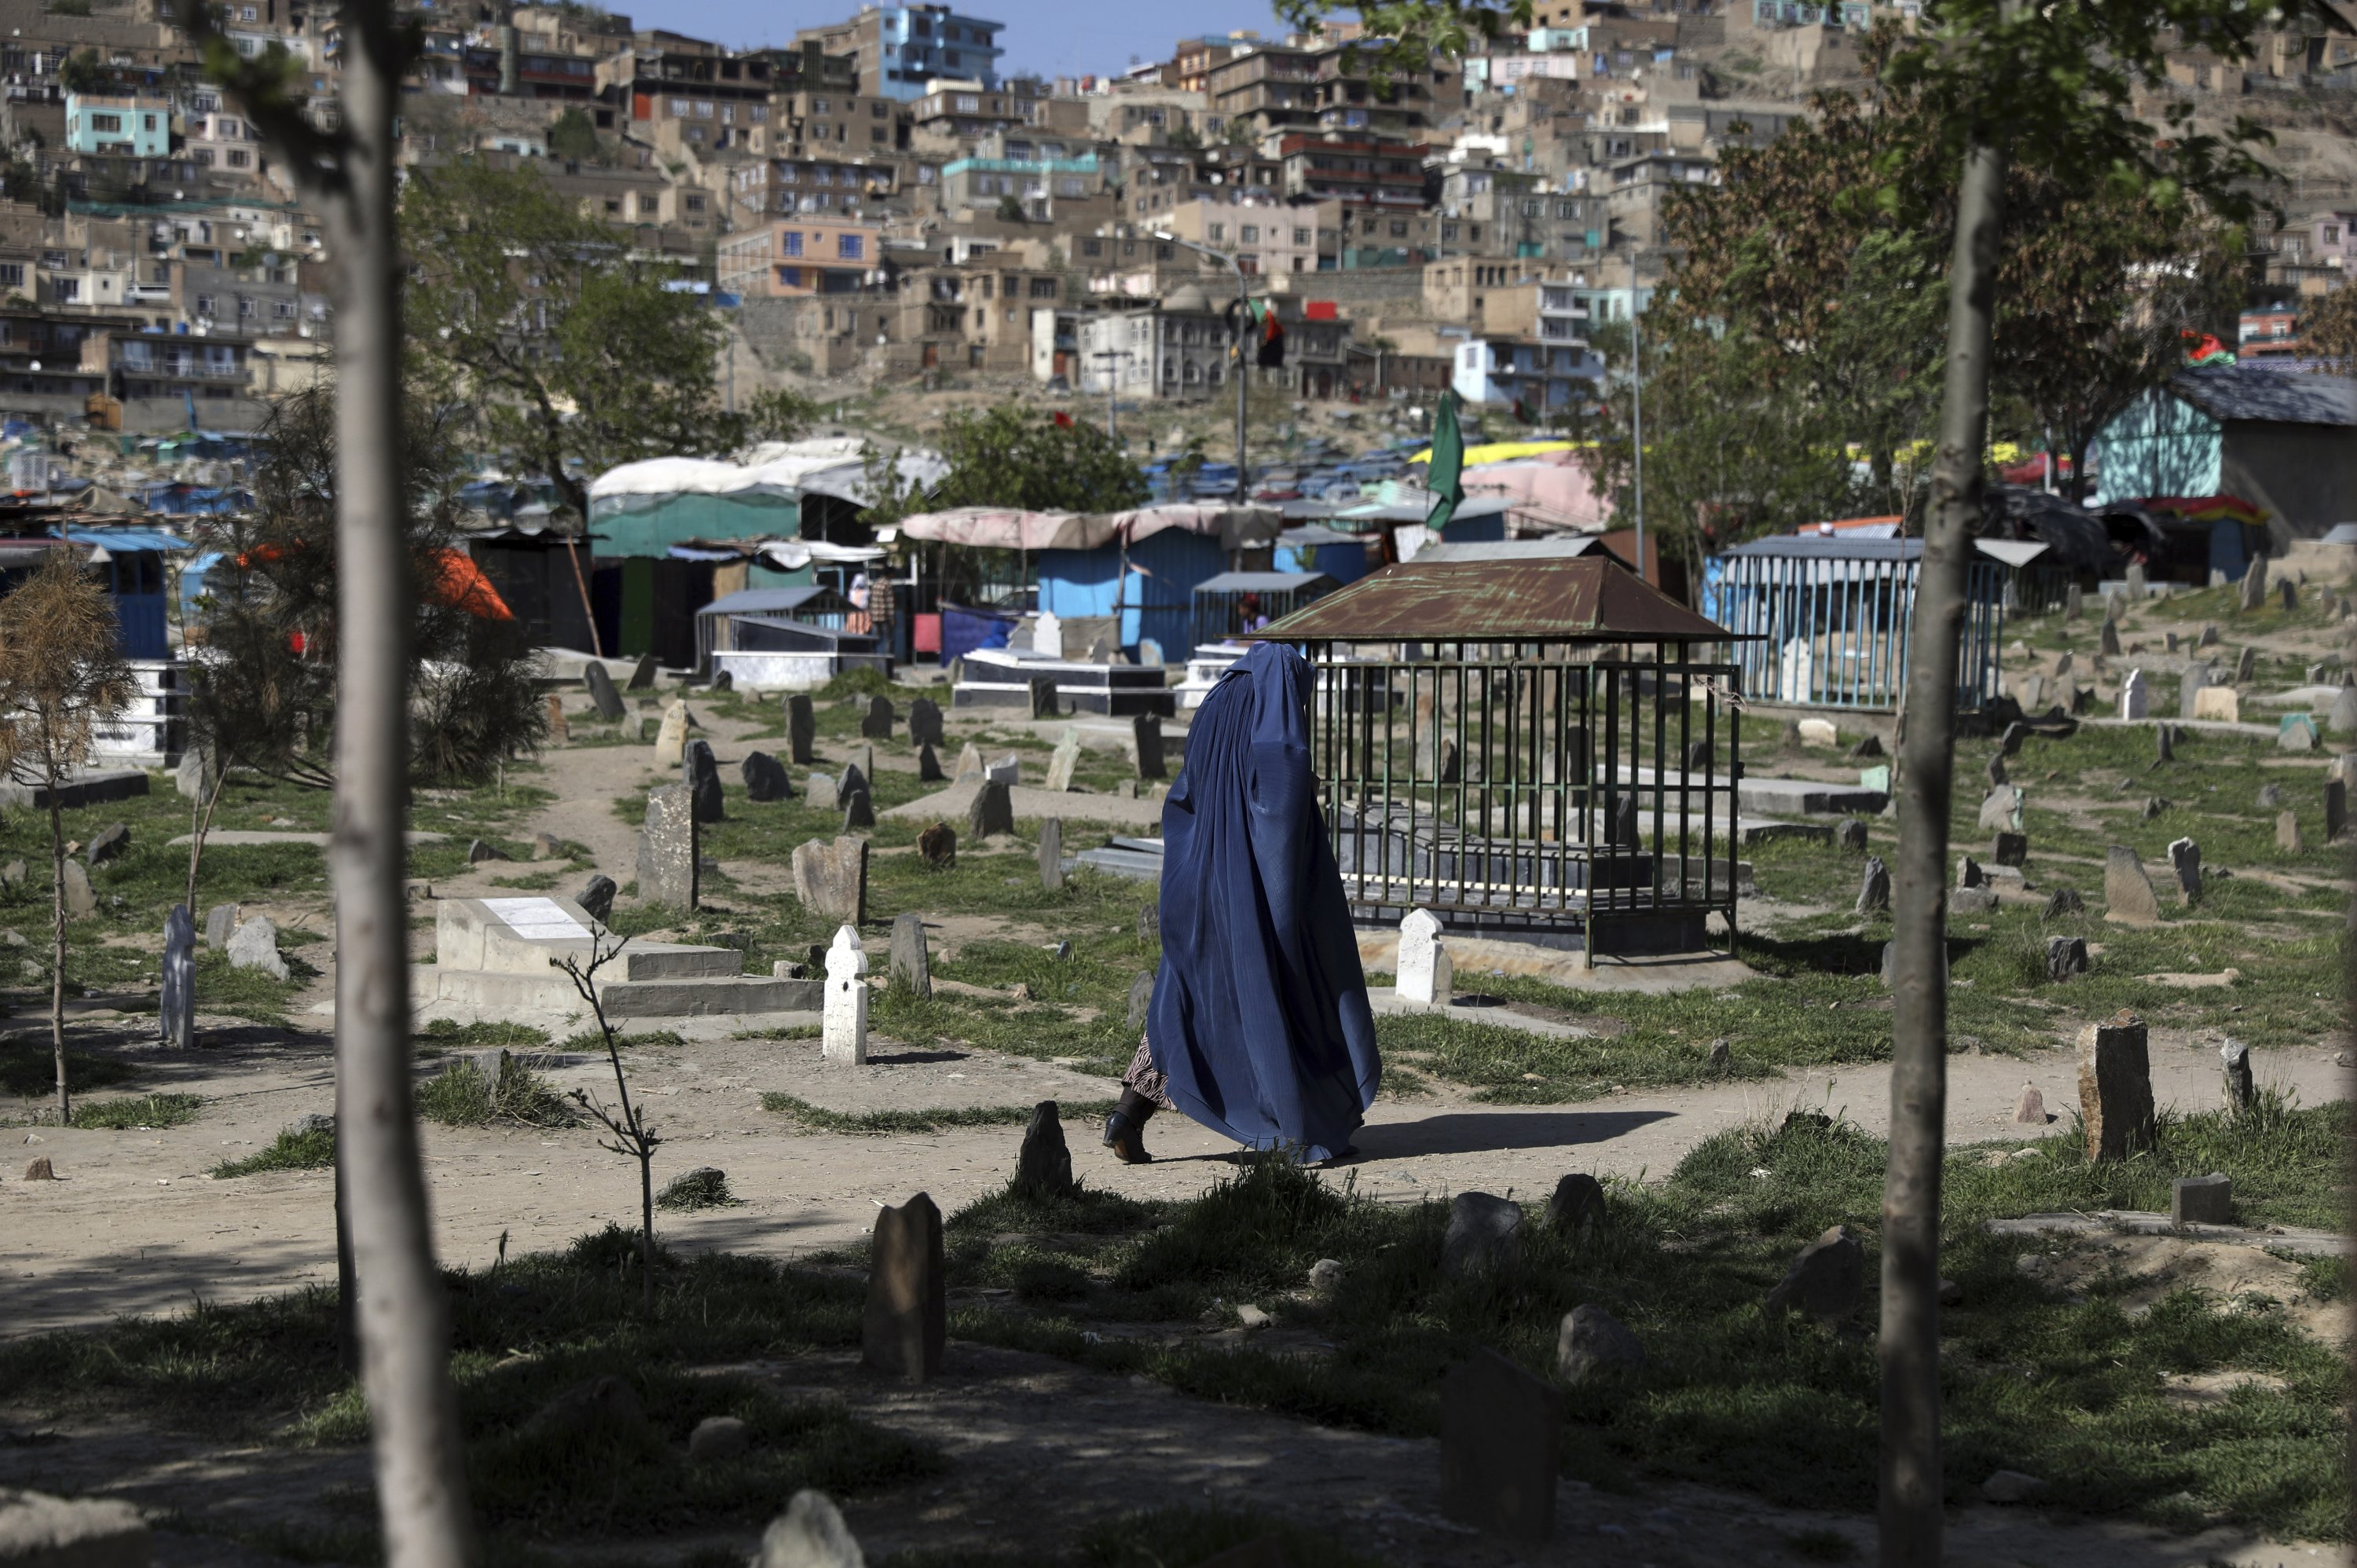 A burqa-clad woman walks in a cemetery during the holy fasting month of Ramadan in Kabul, Afghanistan, April 18, 2021. (AP Photo)